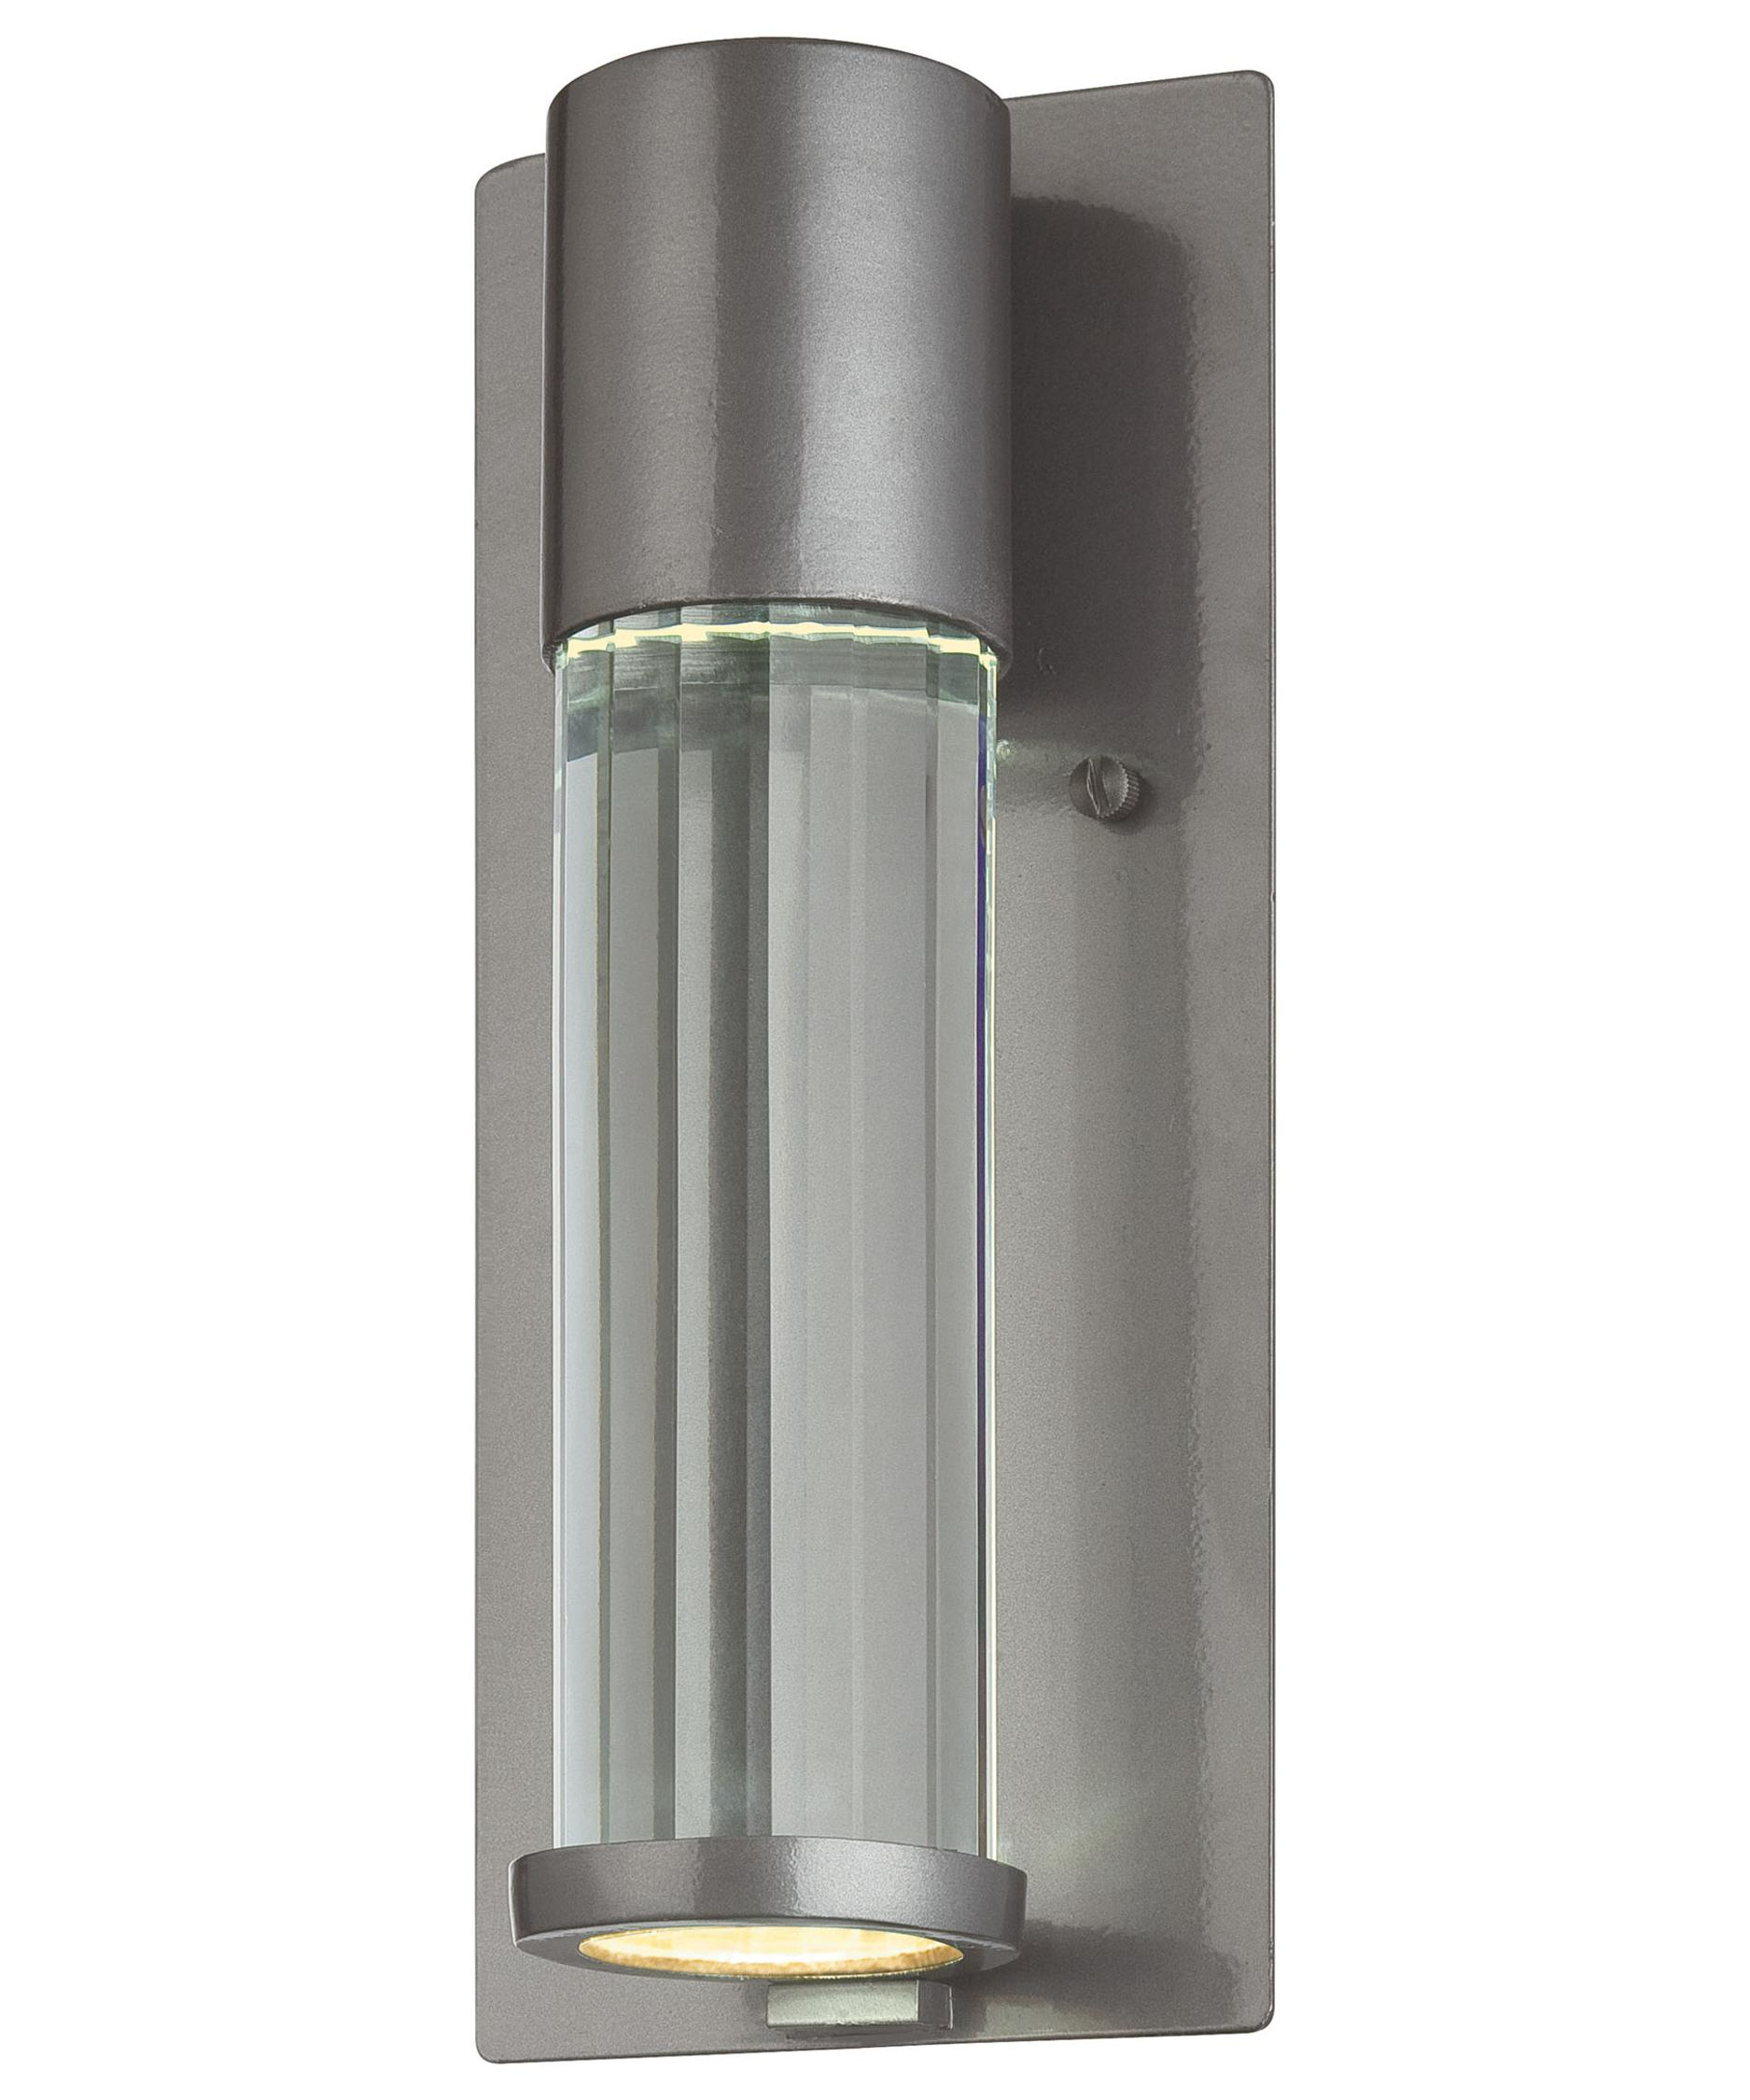 minka lavery  soare  inch wide  light outdoor wall light  - shown in tinted silver finish and faceted eidolon krystal glass